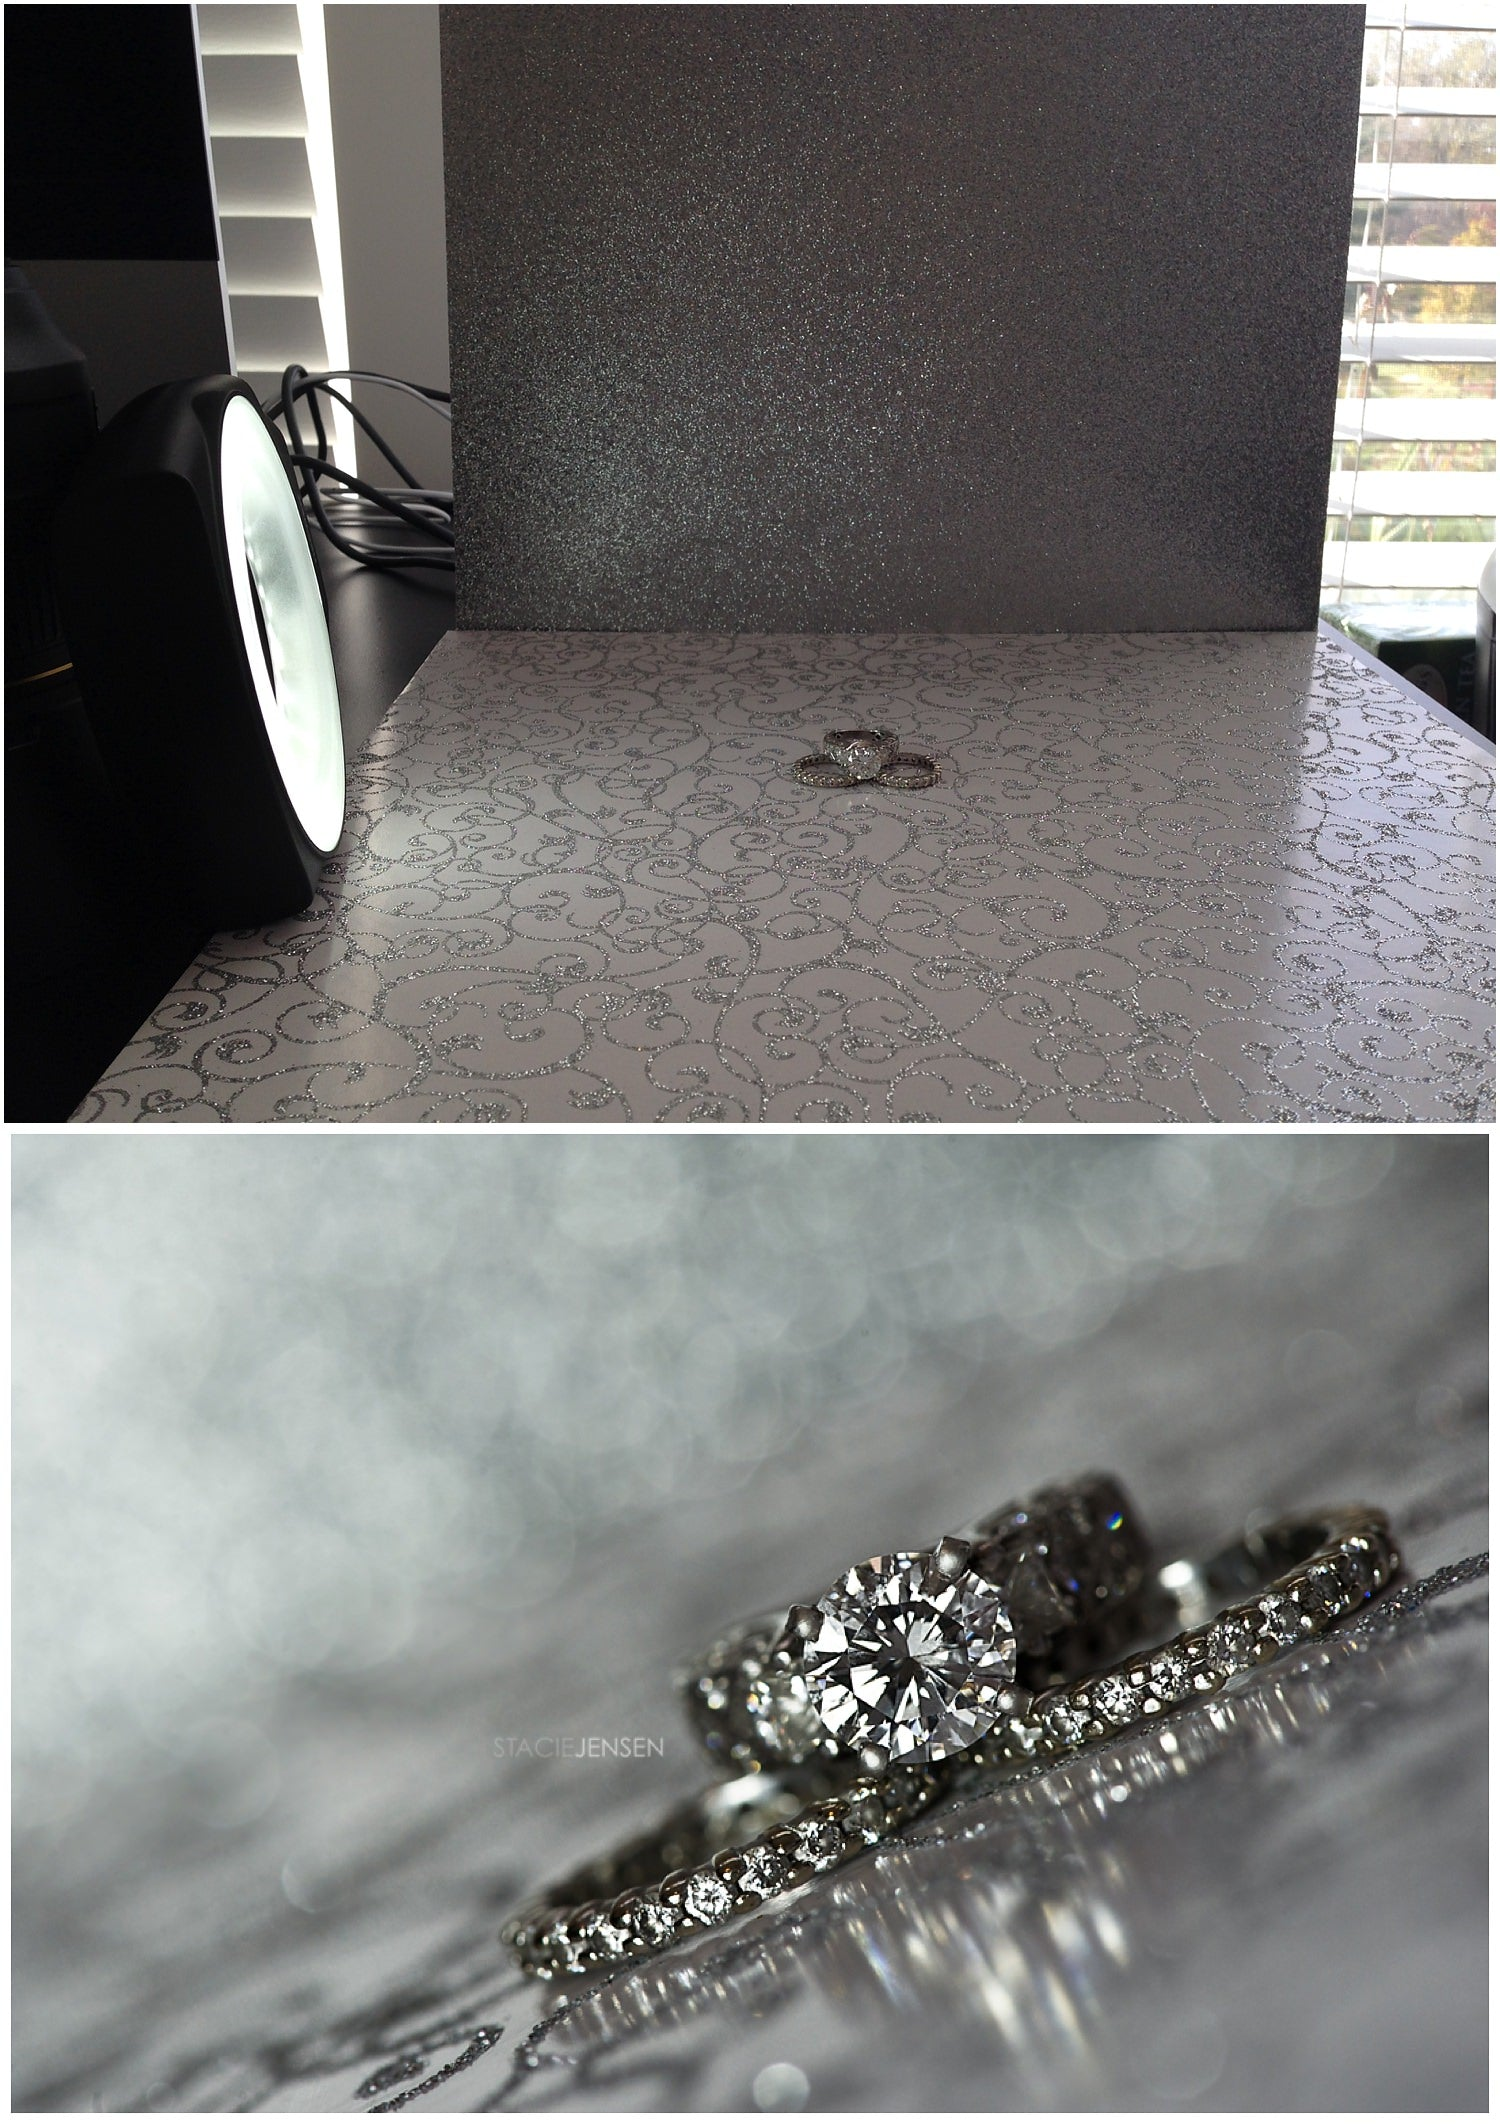 Setup for wedding ring macro photography